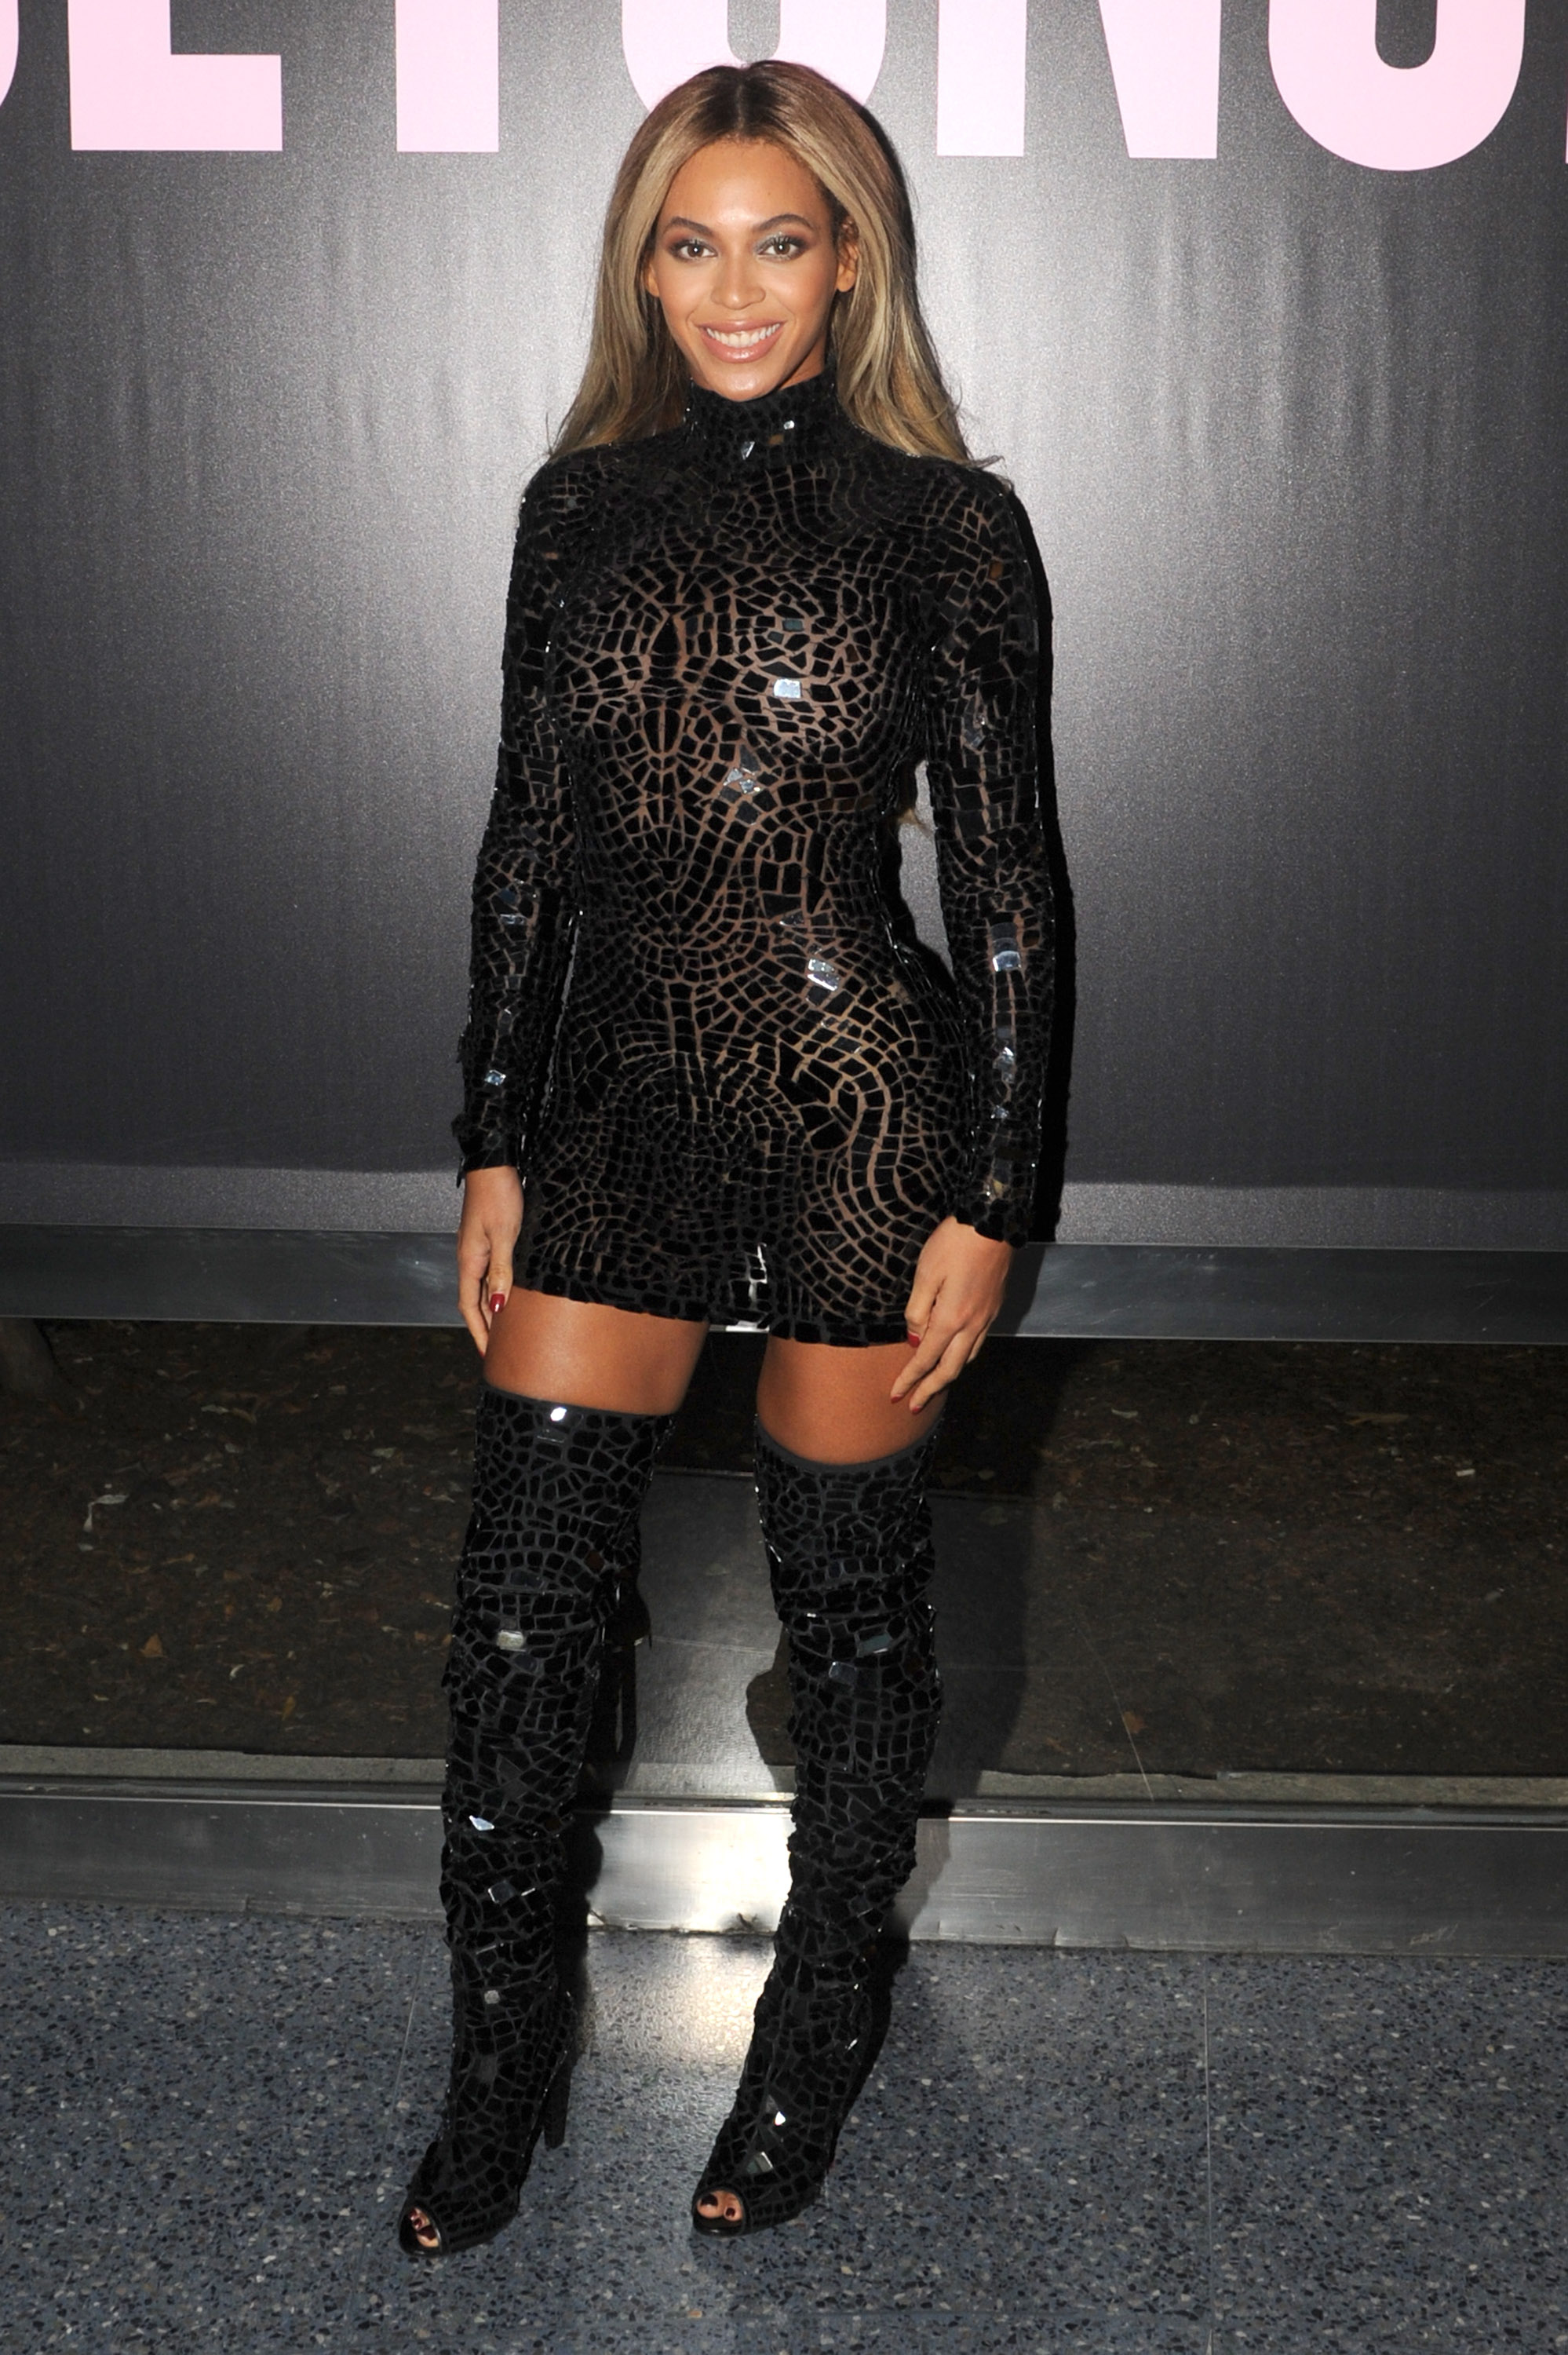 Image result for hot images of beyonce